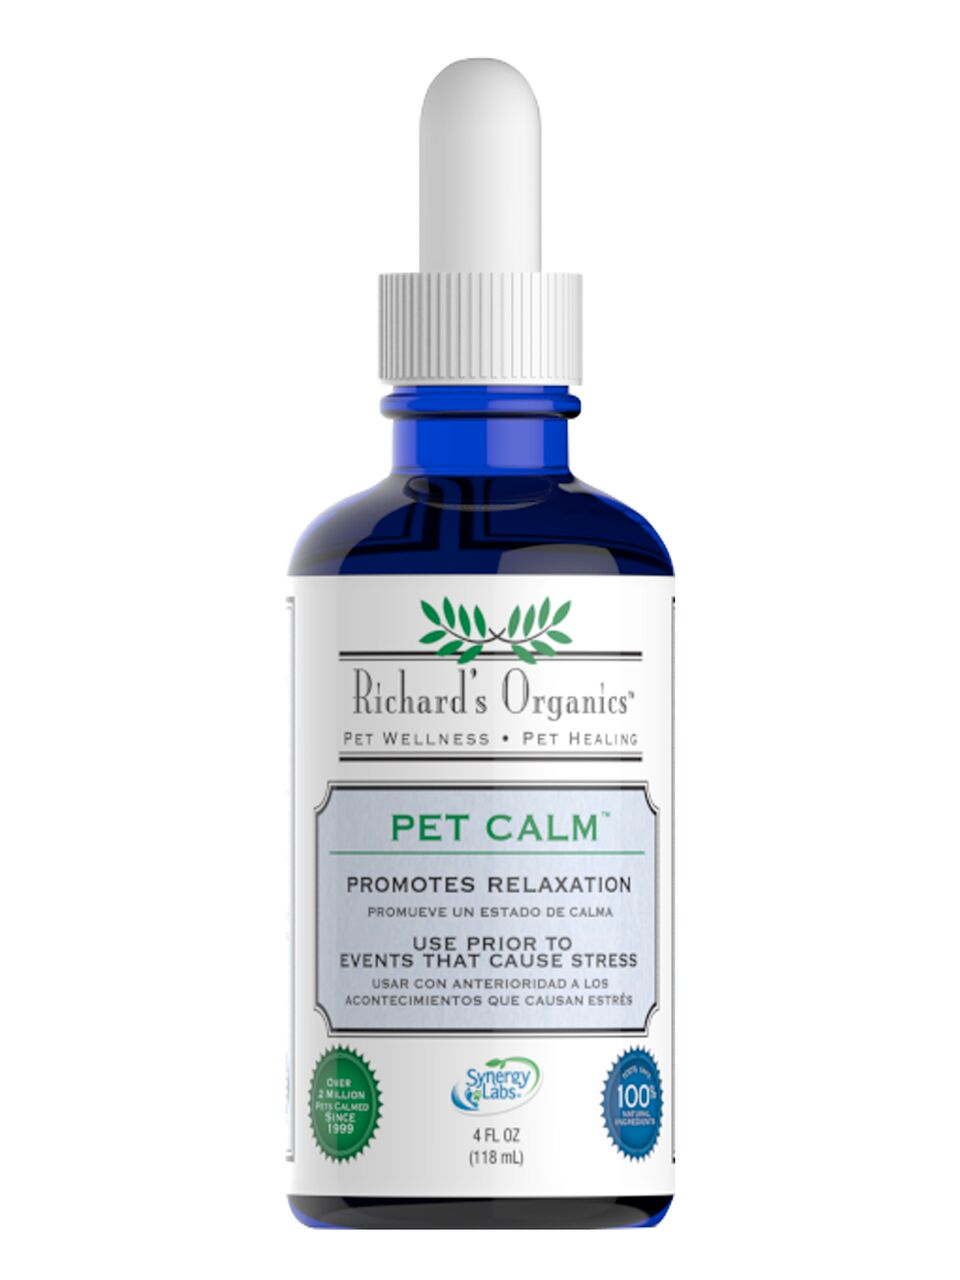 Richard's Organics Pet Calm